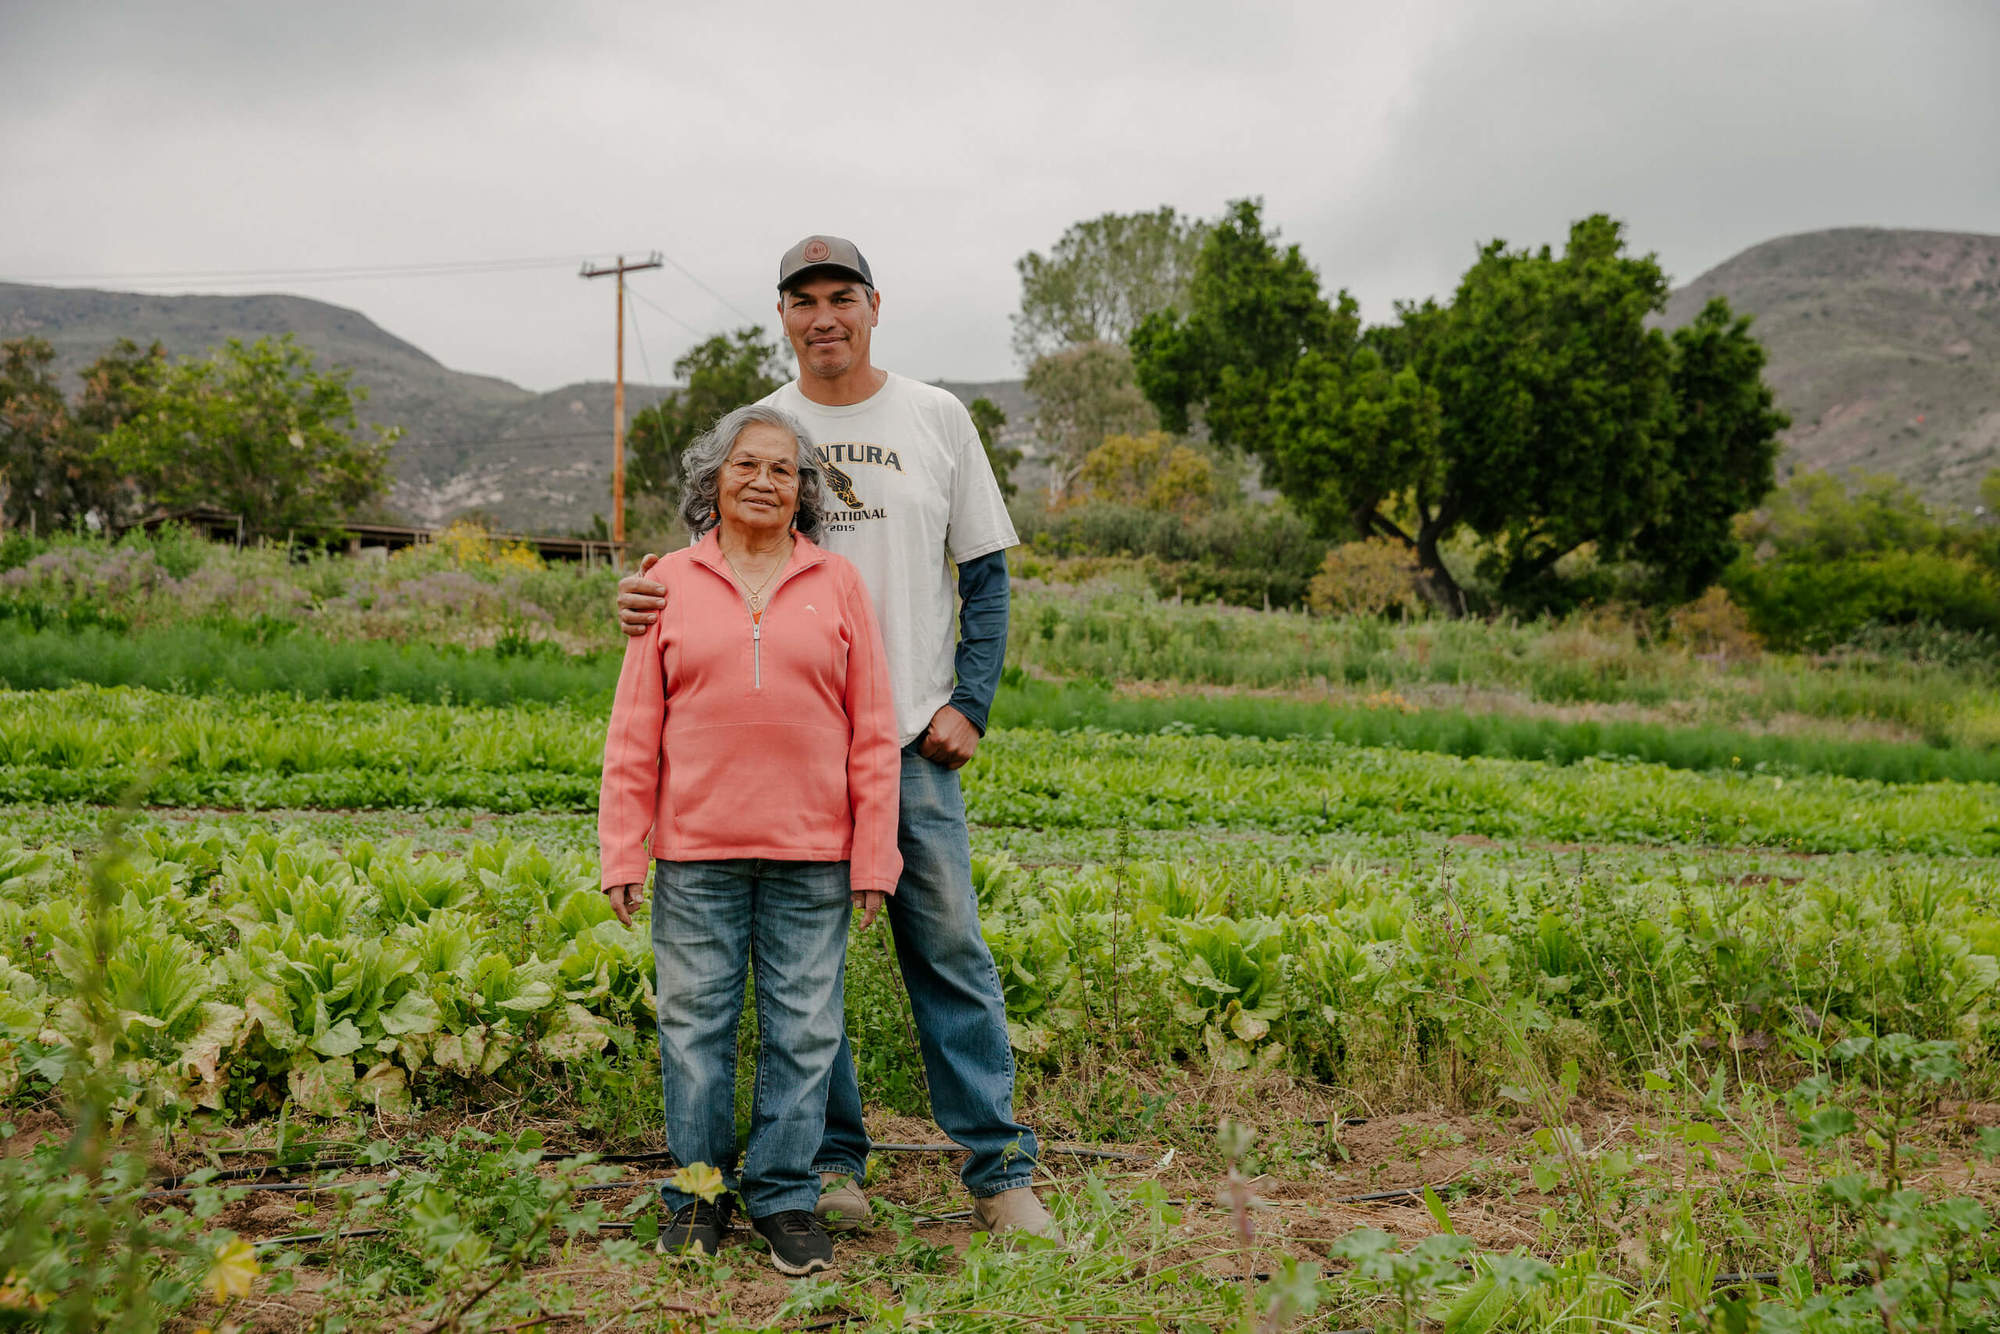 Romeo holding his mom Fidela while standing in a field on their family farm. May 2021